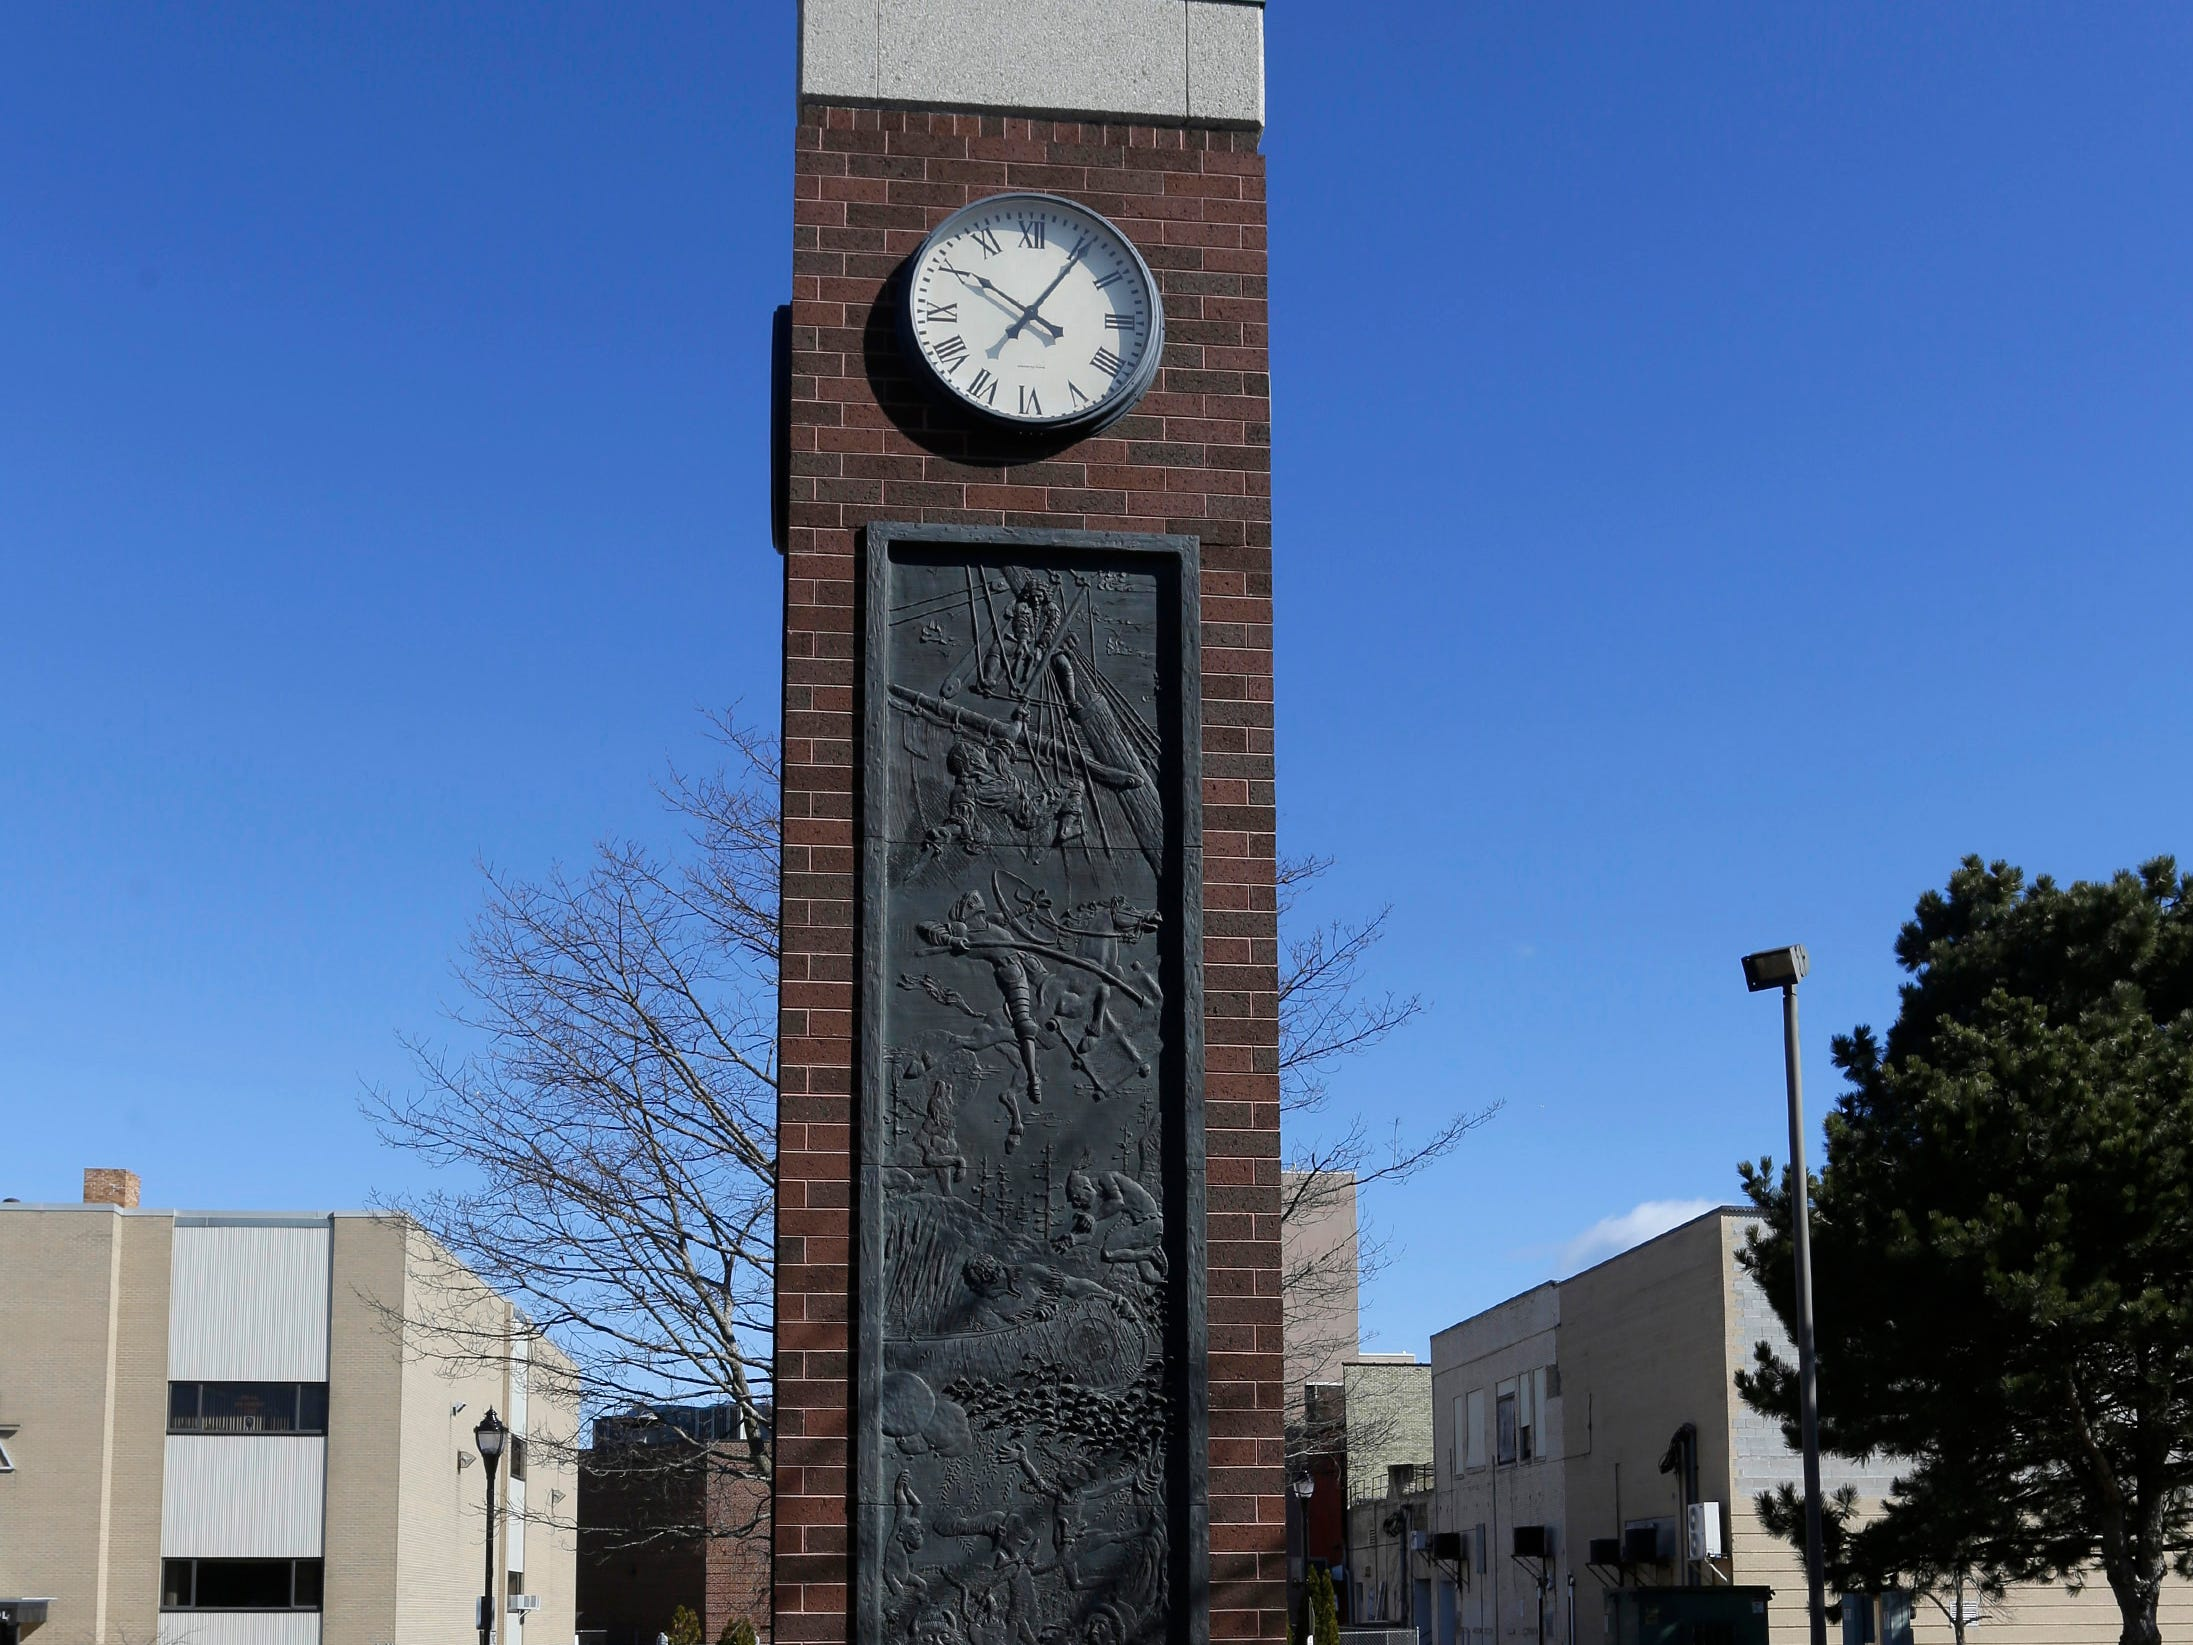 A view of the clock tower at Mead Public Library, Tuesday, April 9, 2019, in Sheboygan, Wis.